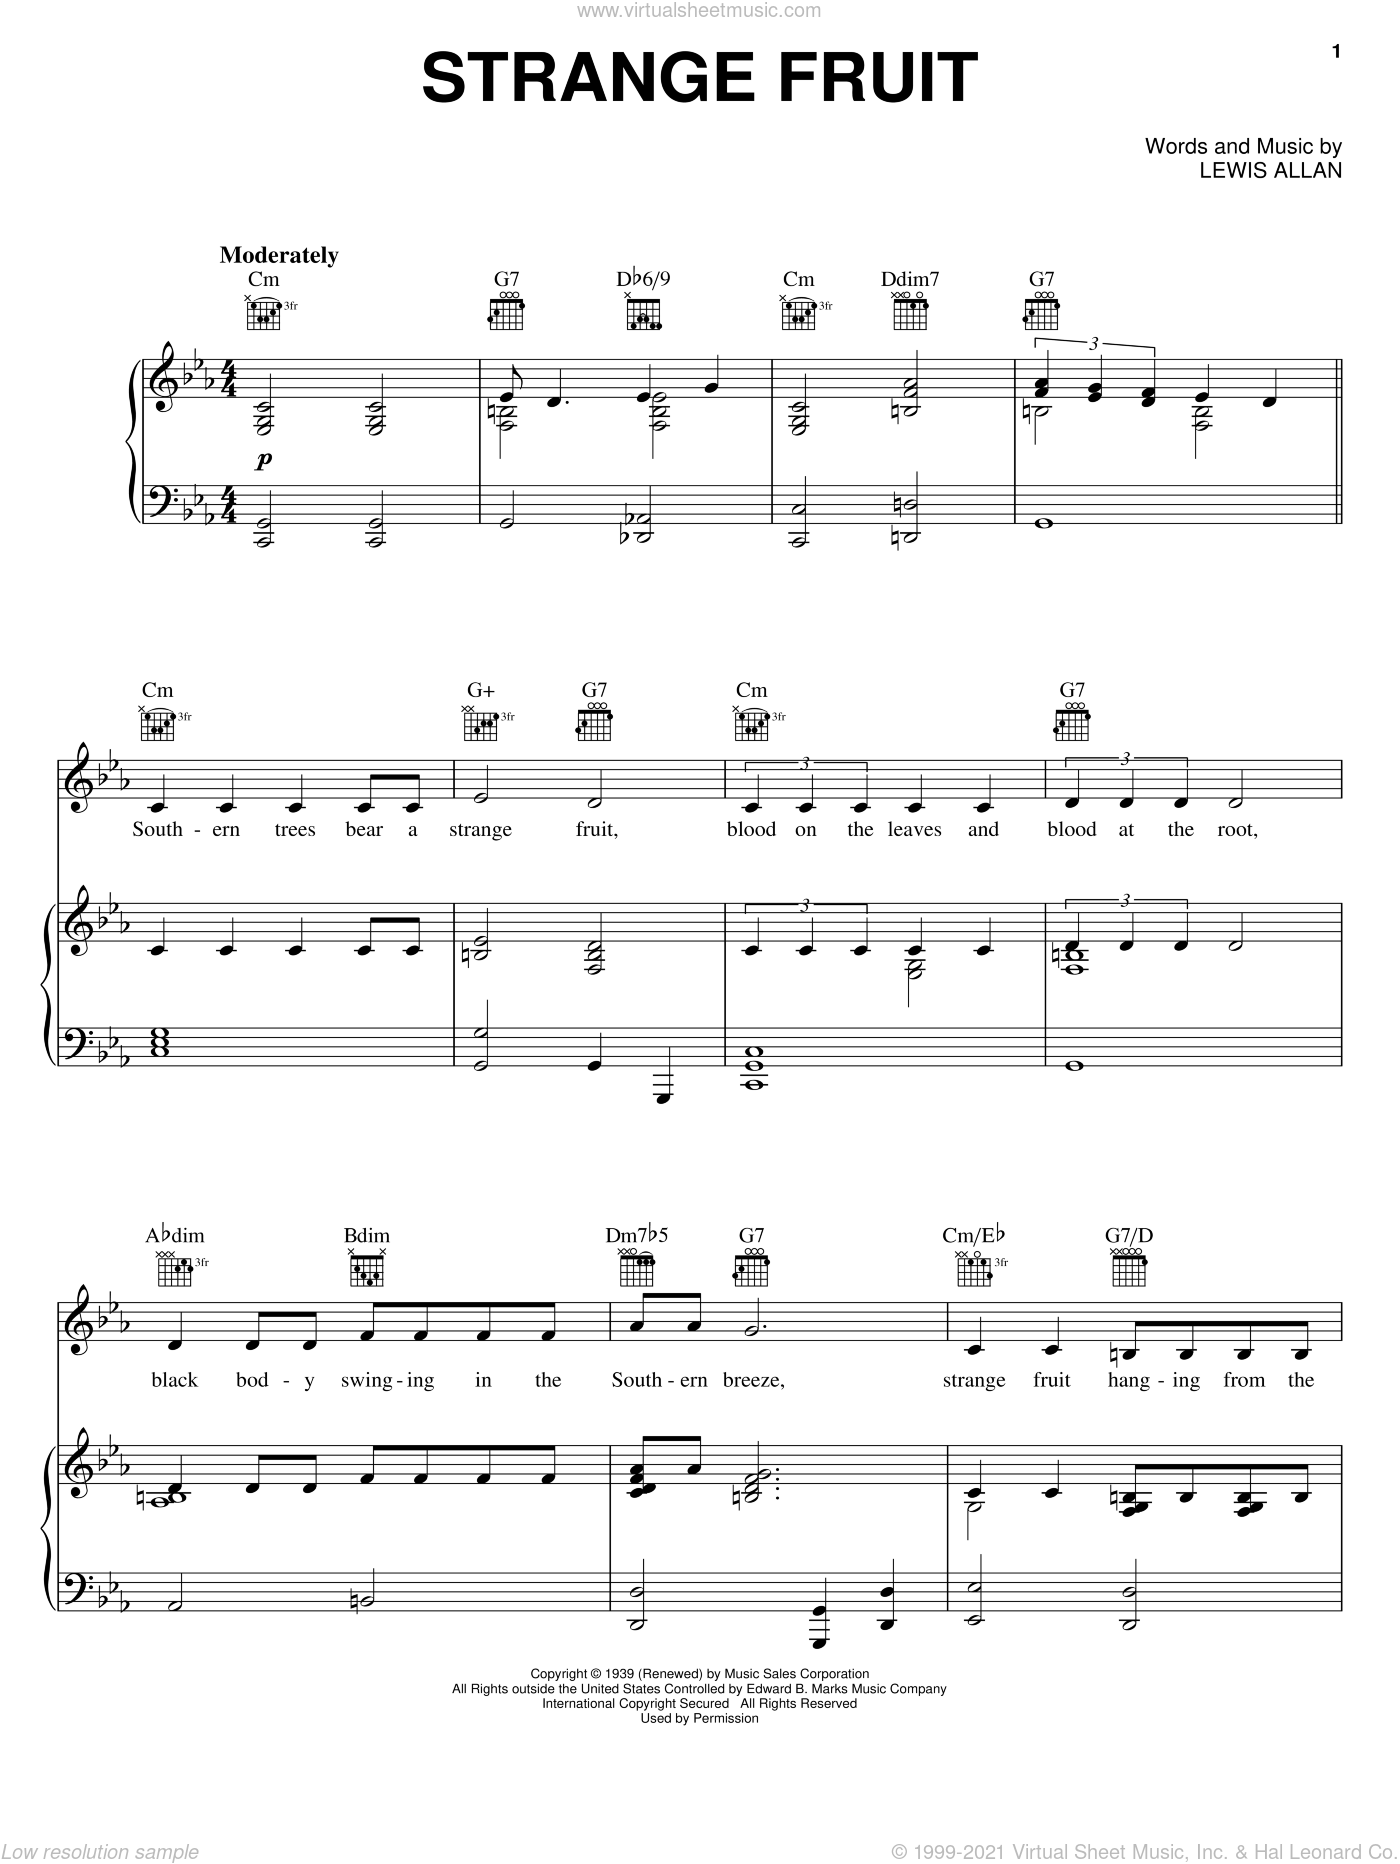 Strange Fruit sheet music for voice, piano or guitar by Billie Holiday and Lewis Allan, intermediate skill level